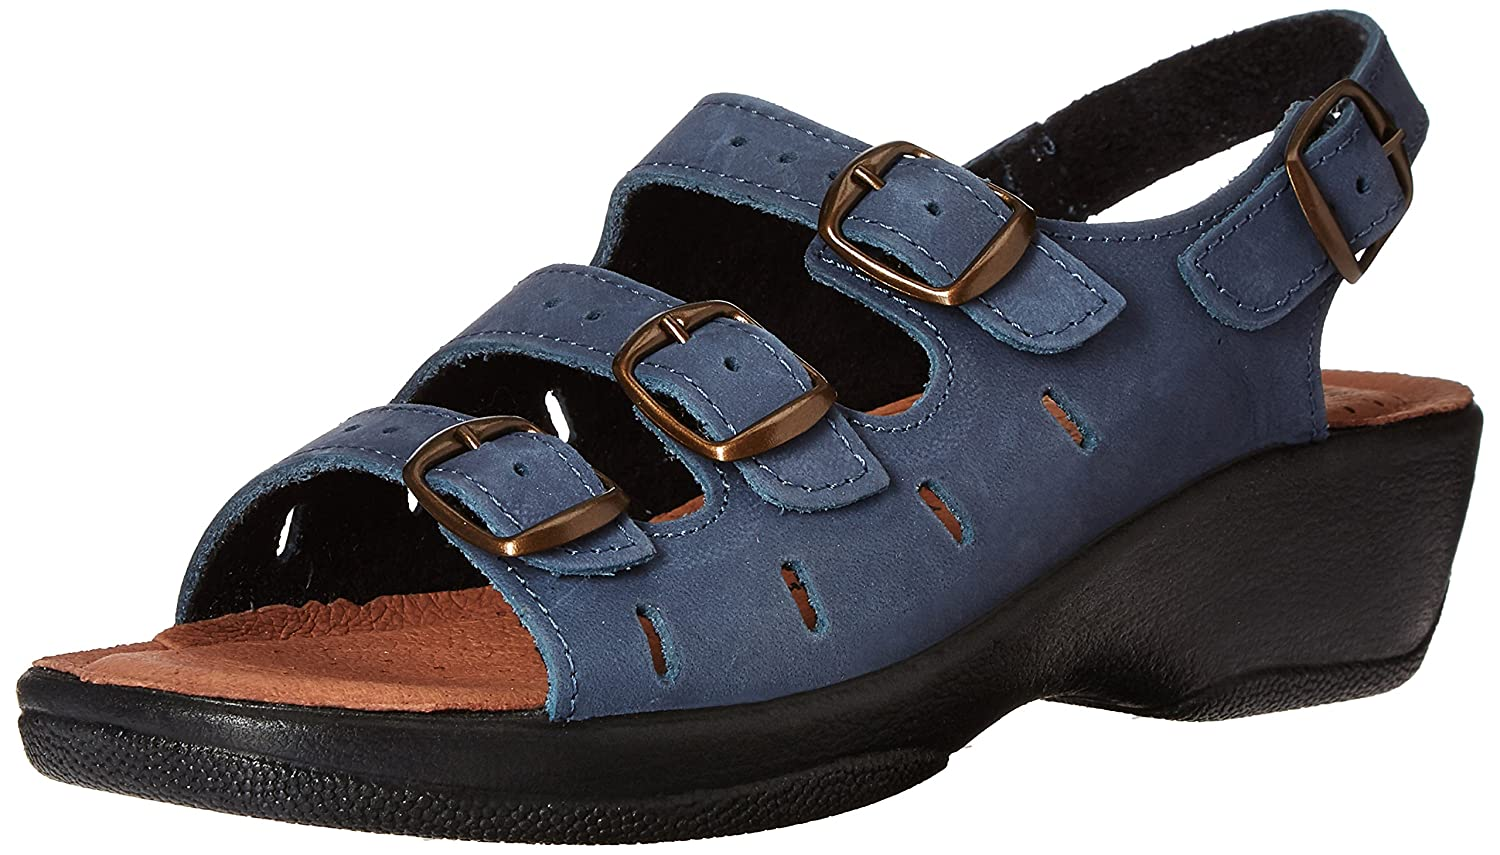 Spring Step 37 Women's Willa Wedge Sandal B00BLQBJXO 37 Step EU/6.5-7 M US|Navy 32b322